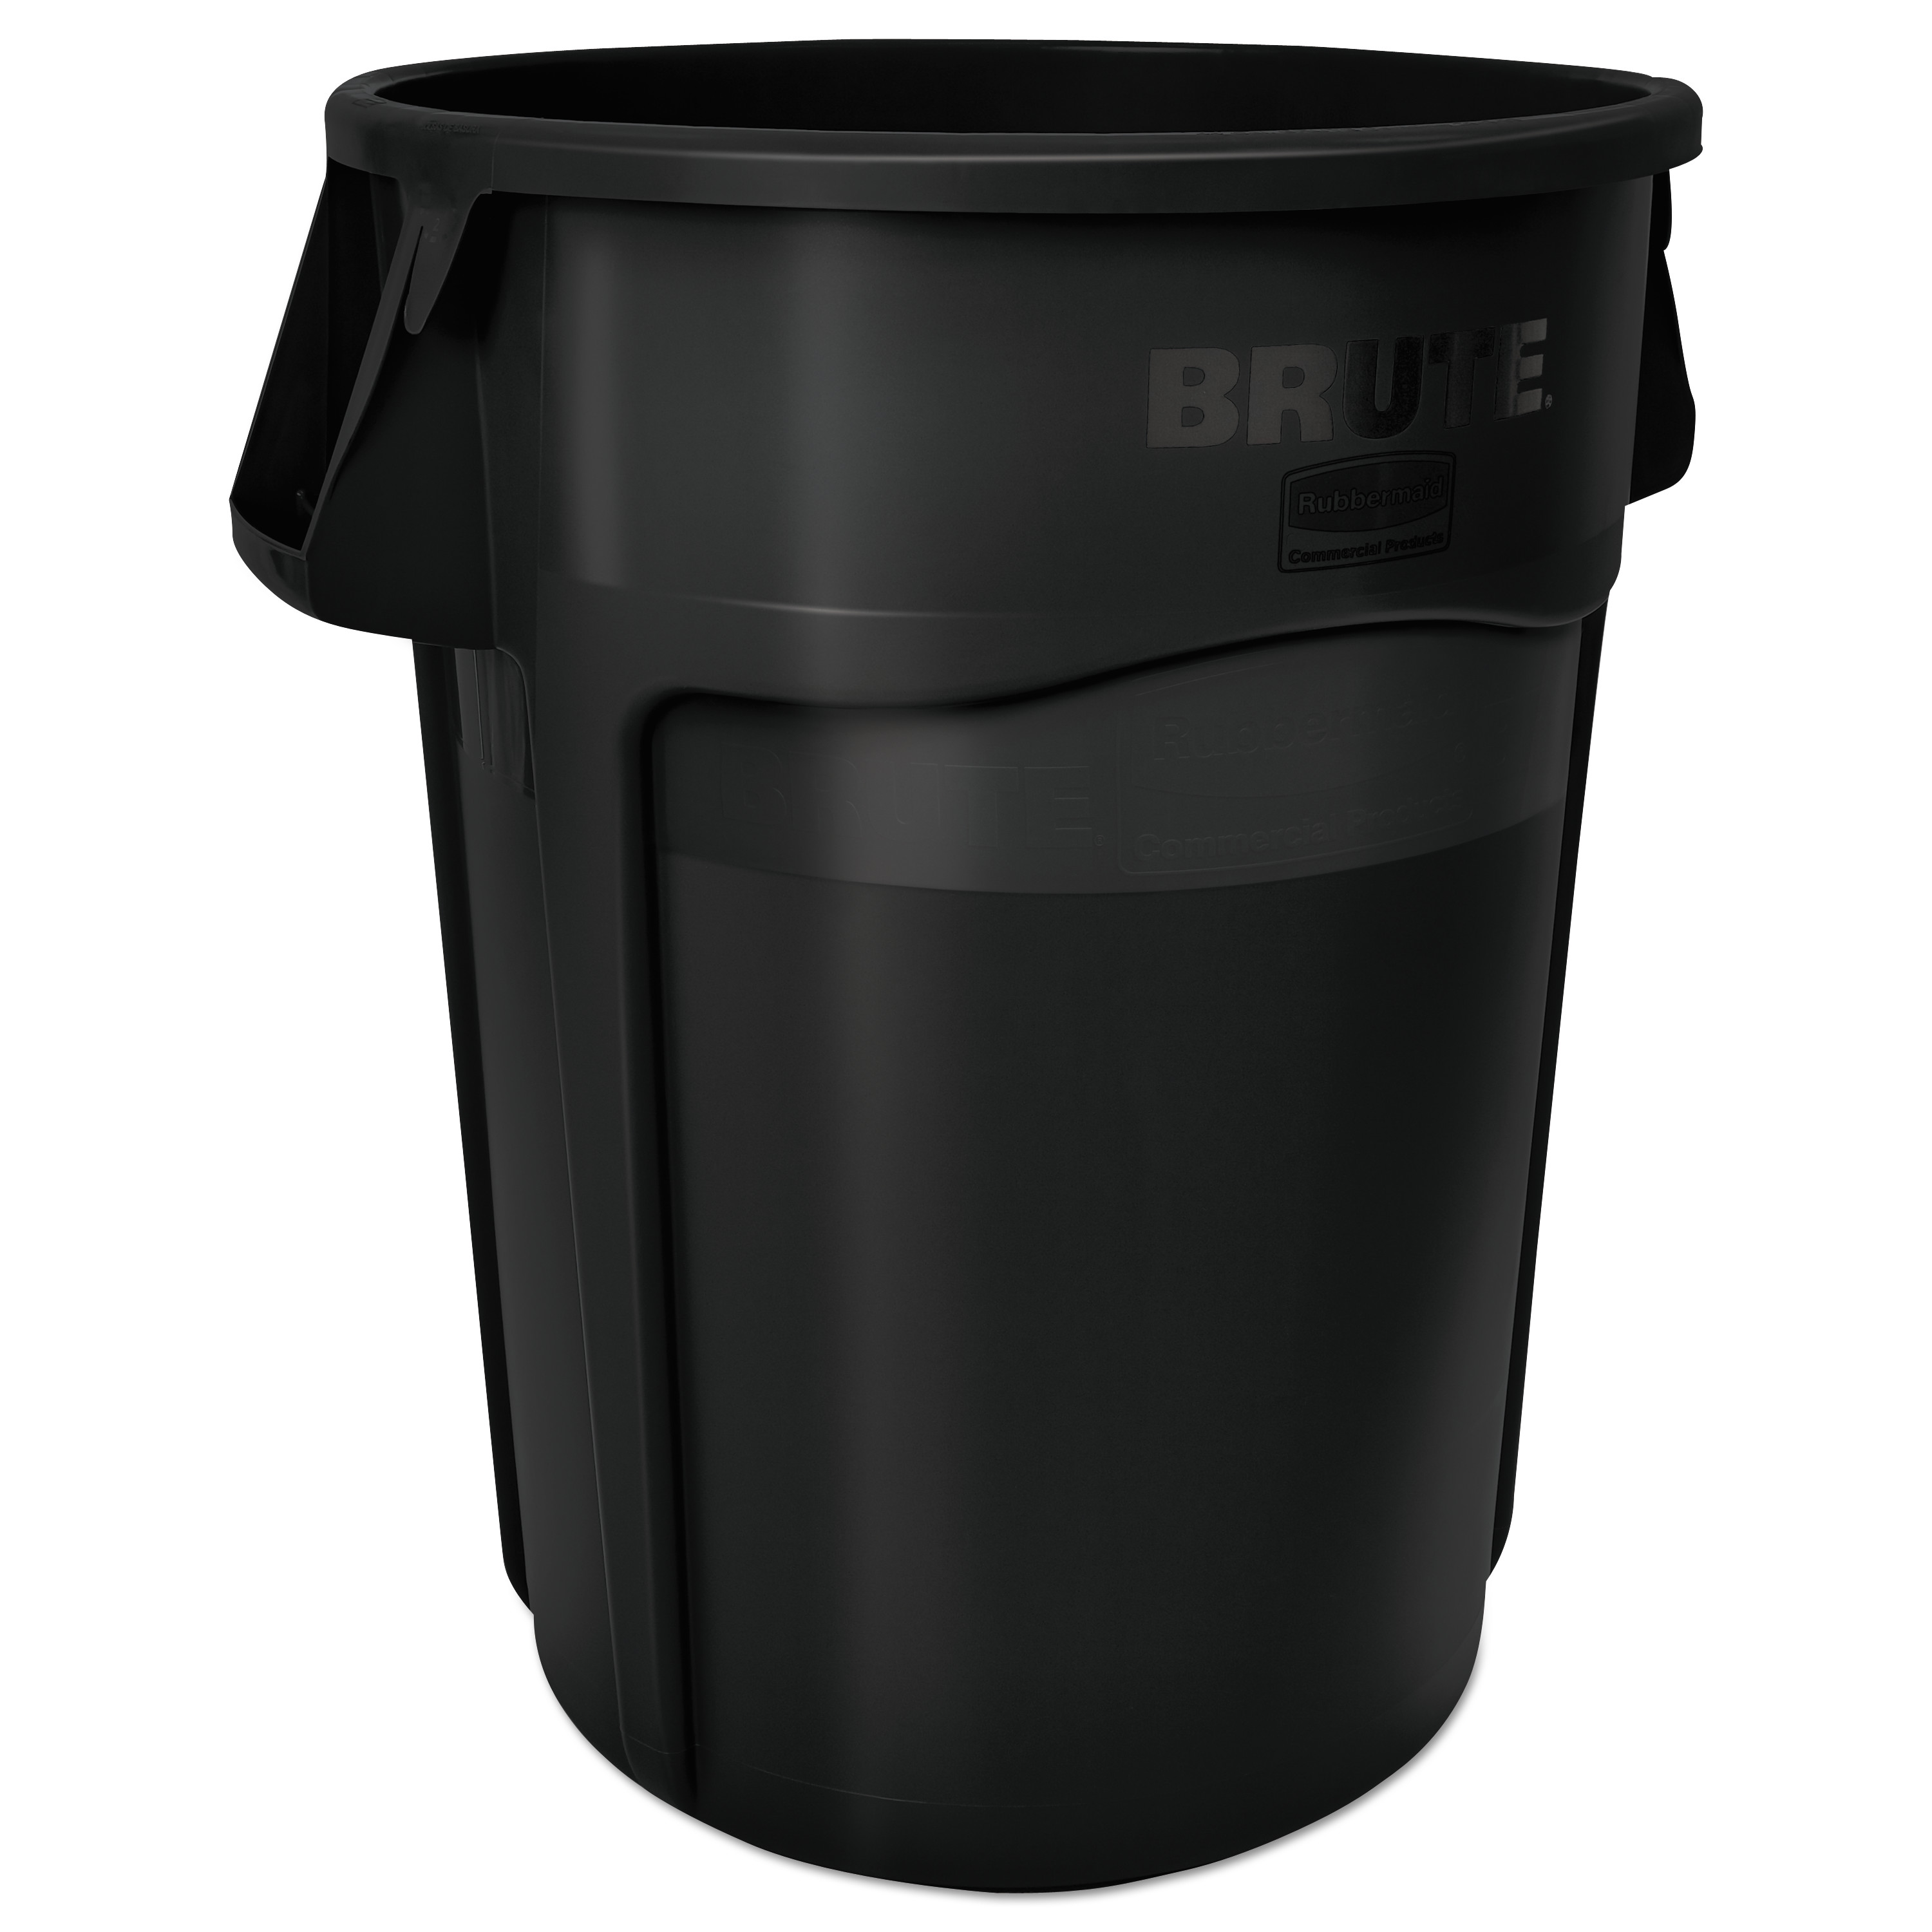 Vented Round Brute Container, 55 gal, Black